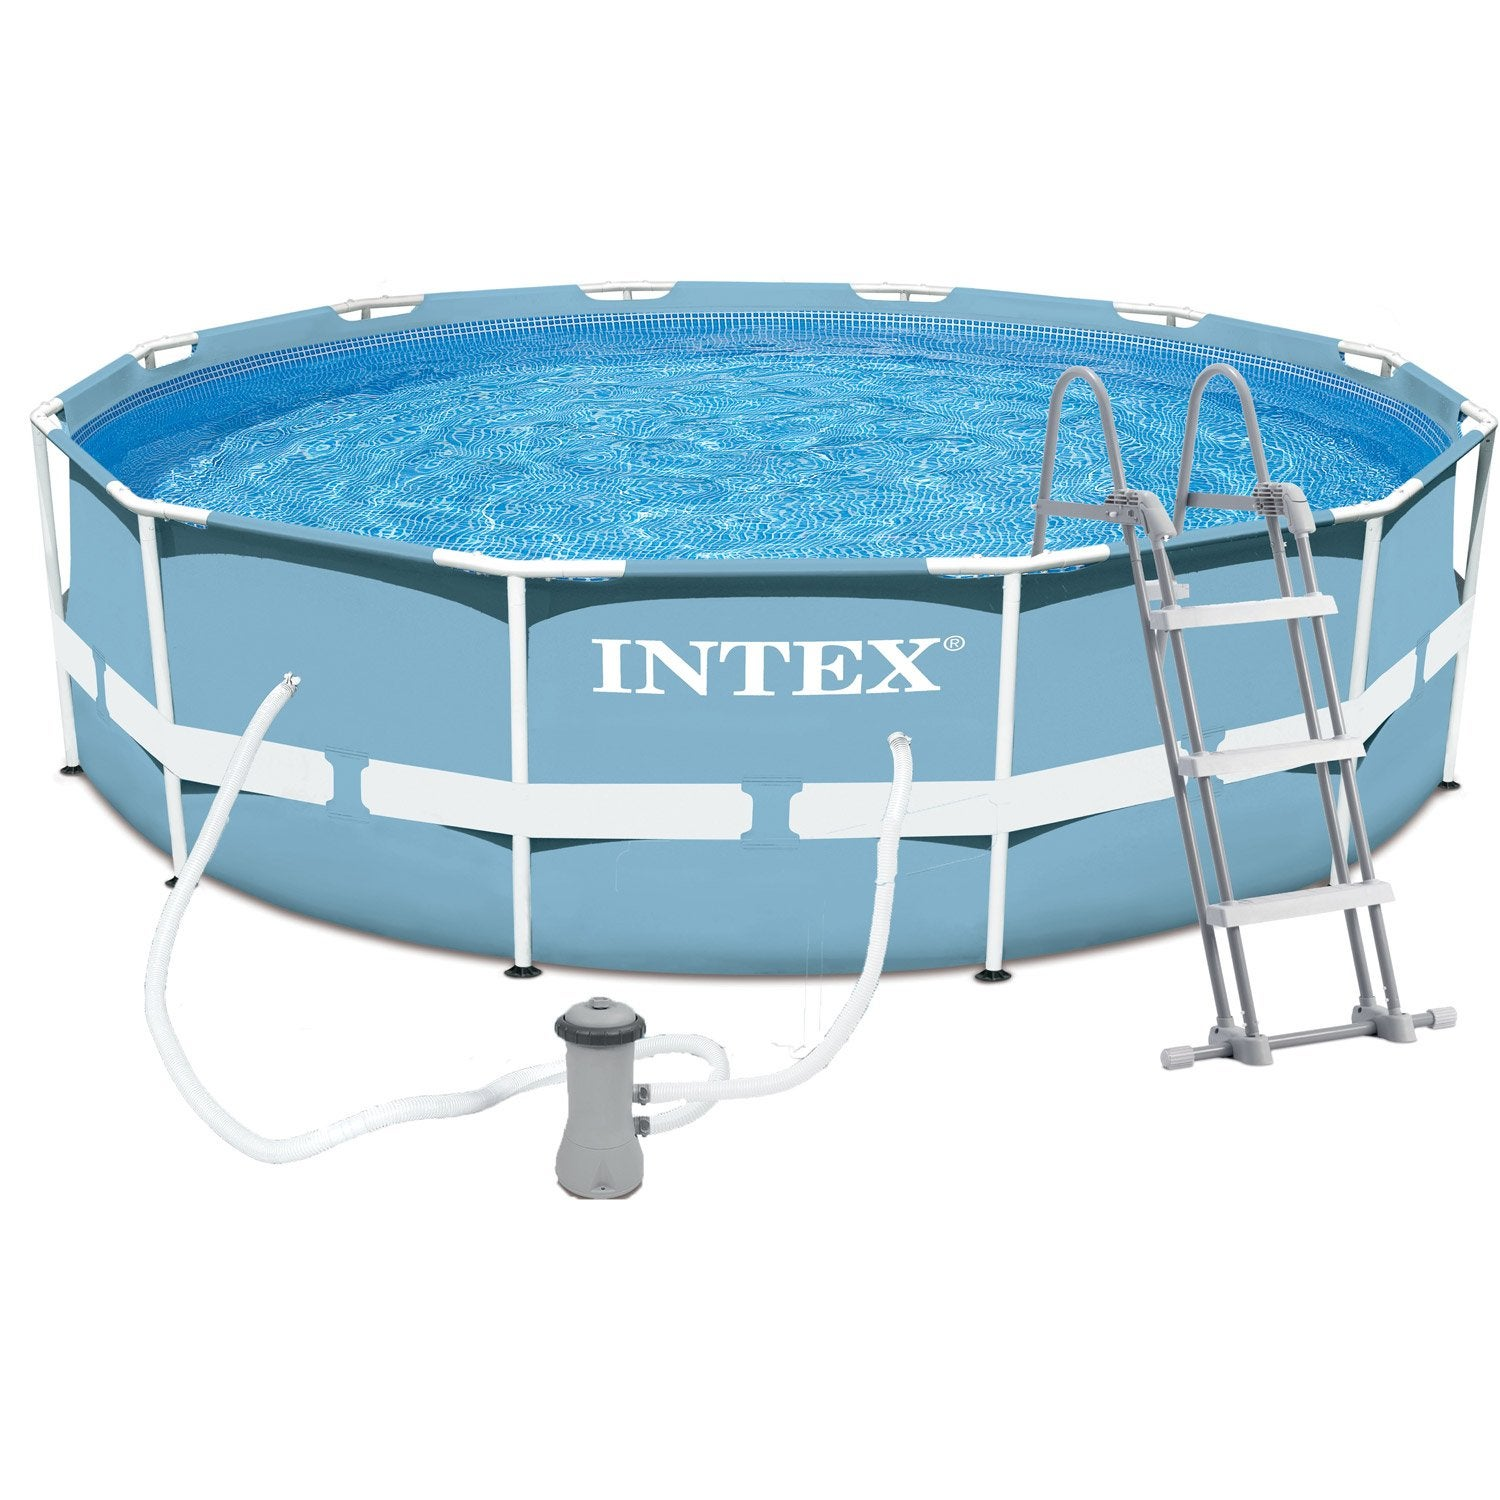 Piscine hors sol autoportante tubulaire prism frame intex for Aspirateur piscine hors sol jilong